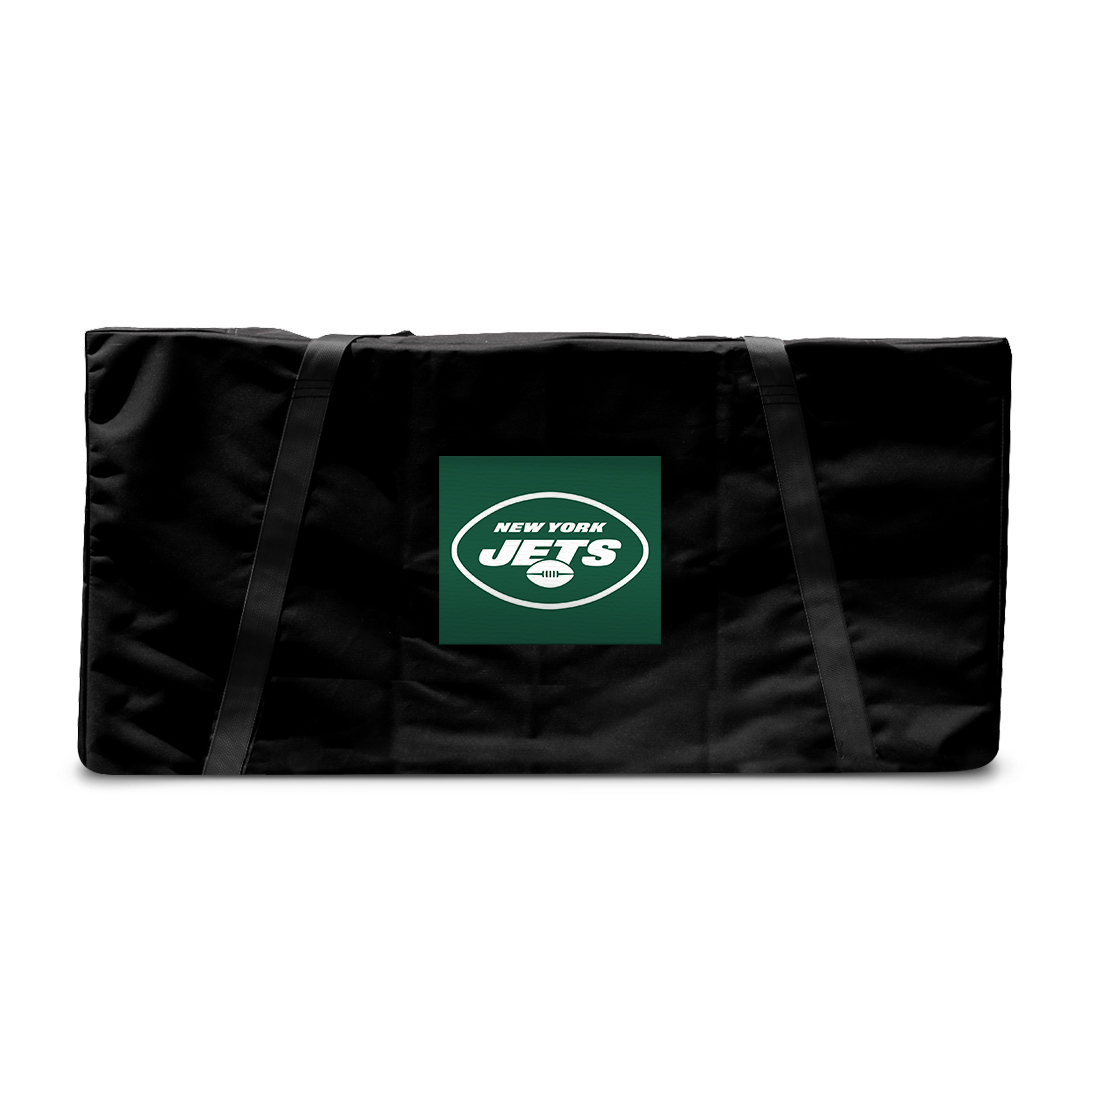 New York Jets NFL Tailgate Cornhole Carrying Case